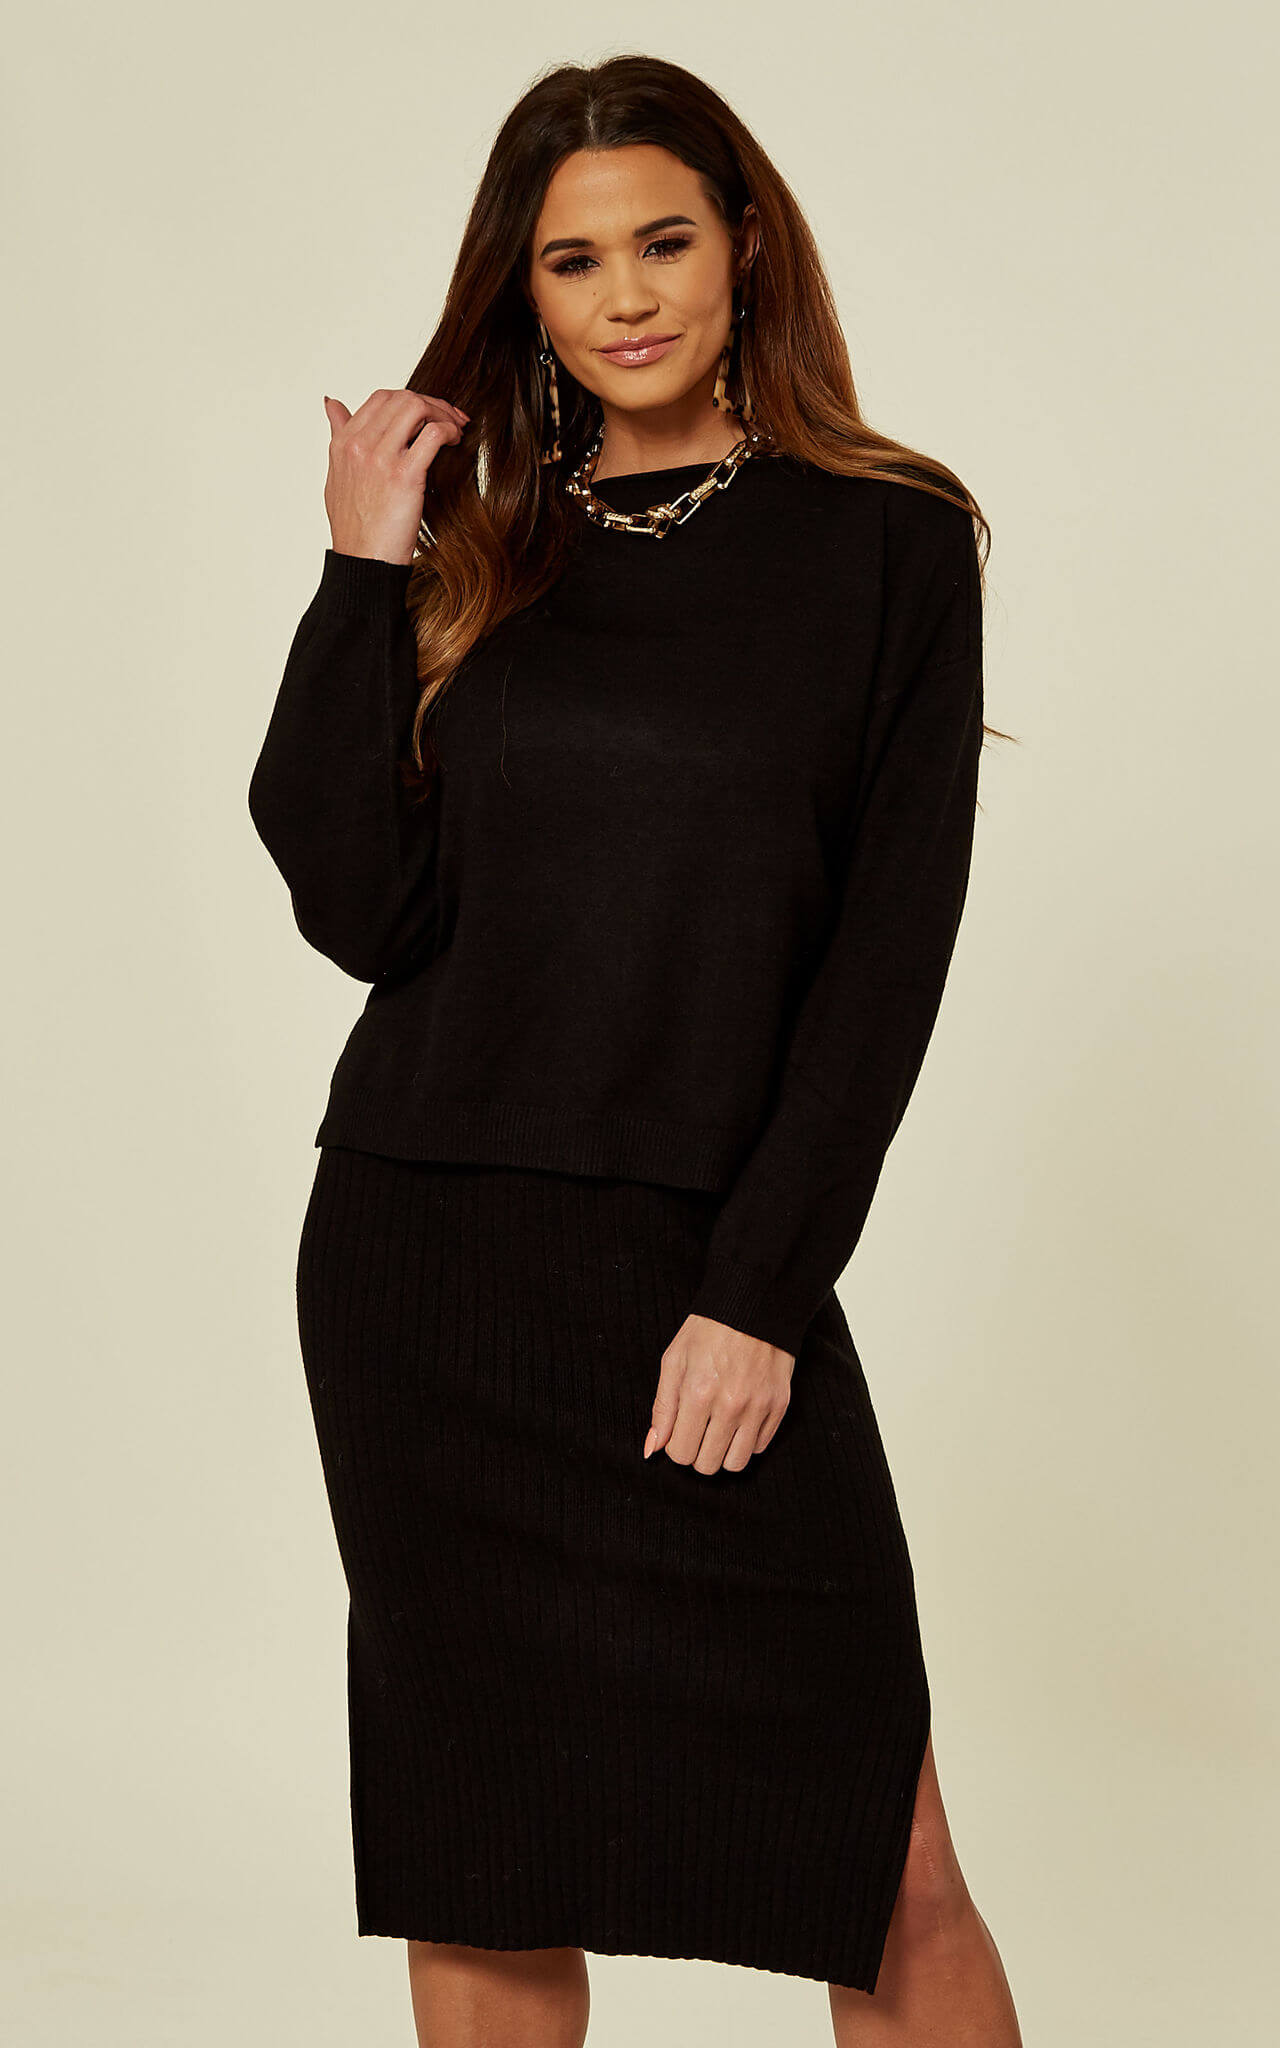 Model wears a knitted black dress and jumper set